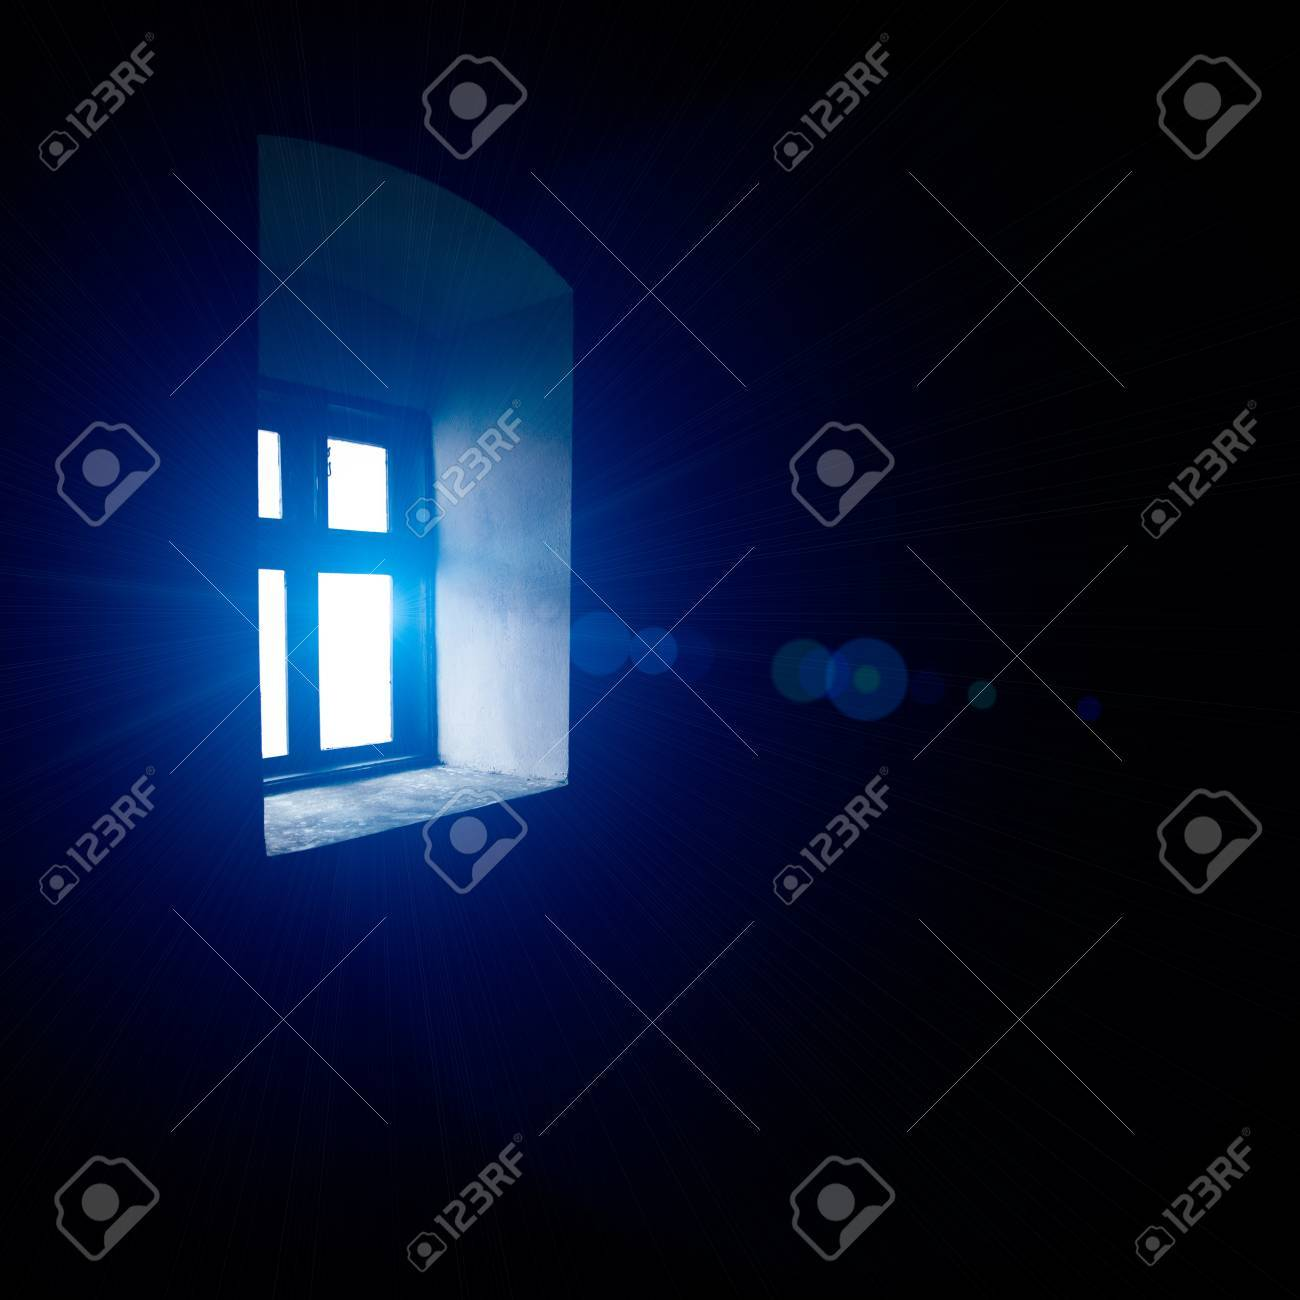 Vintage window with blue light, indoors view Stock Photo - 15320912